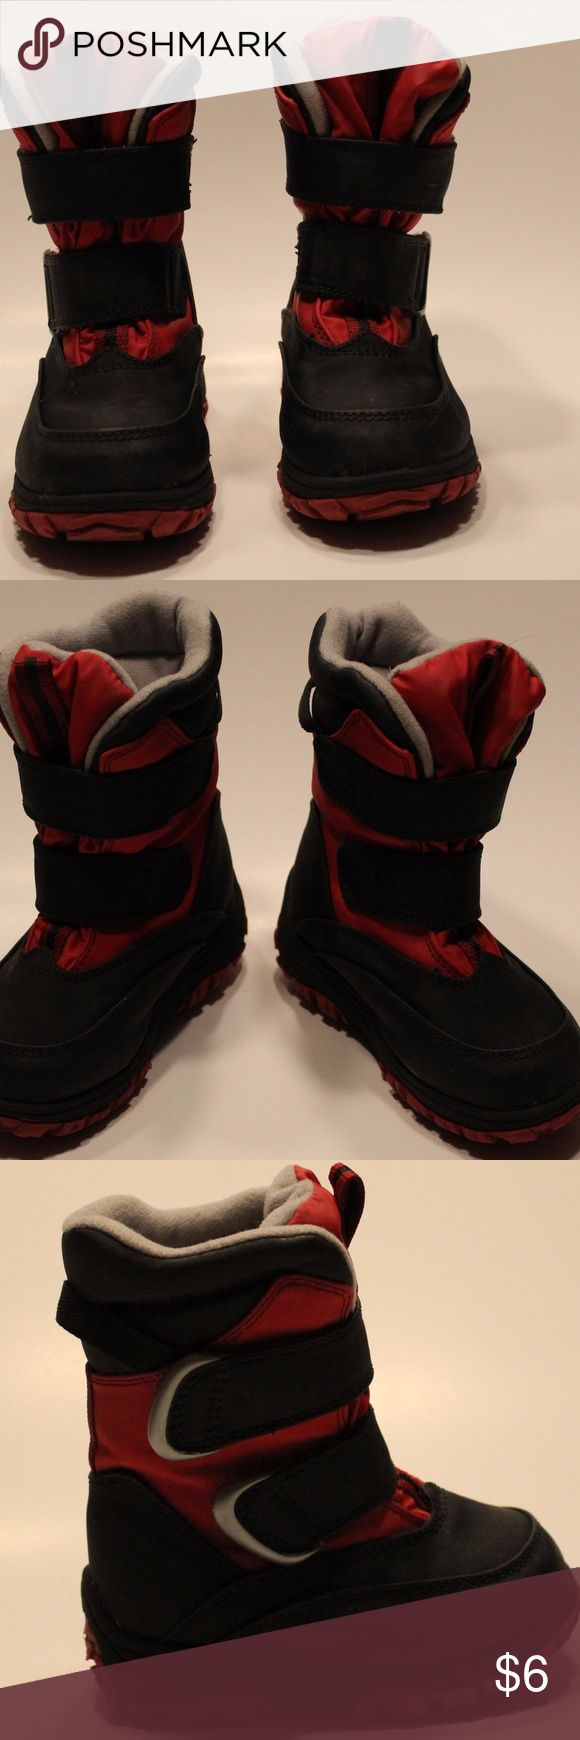 Falls Creek Size 8 Toddlers Snow Boots Gently USED !!!!!!Soon it will be that time of year again!!!!!  Falls Creek Size 8 Toddlers Boys Winter Snow Boots Gently USED  Gently Used Very Clean  Color -- Black and Red ThermoLite Lining Upper lining is light gray and lower half of lining is Black. Very Warm  Velcro Snap Closures (Very Clean)  All purchases with payment received (by 5:00p.m. central time) will ship the same day.   Thank you for stopping by and visit my closet for more wonderful…